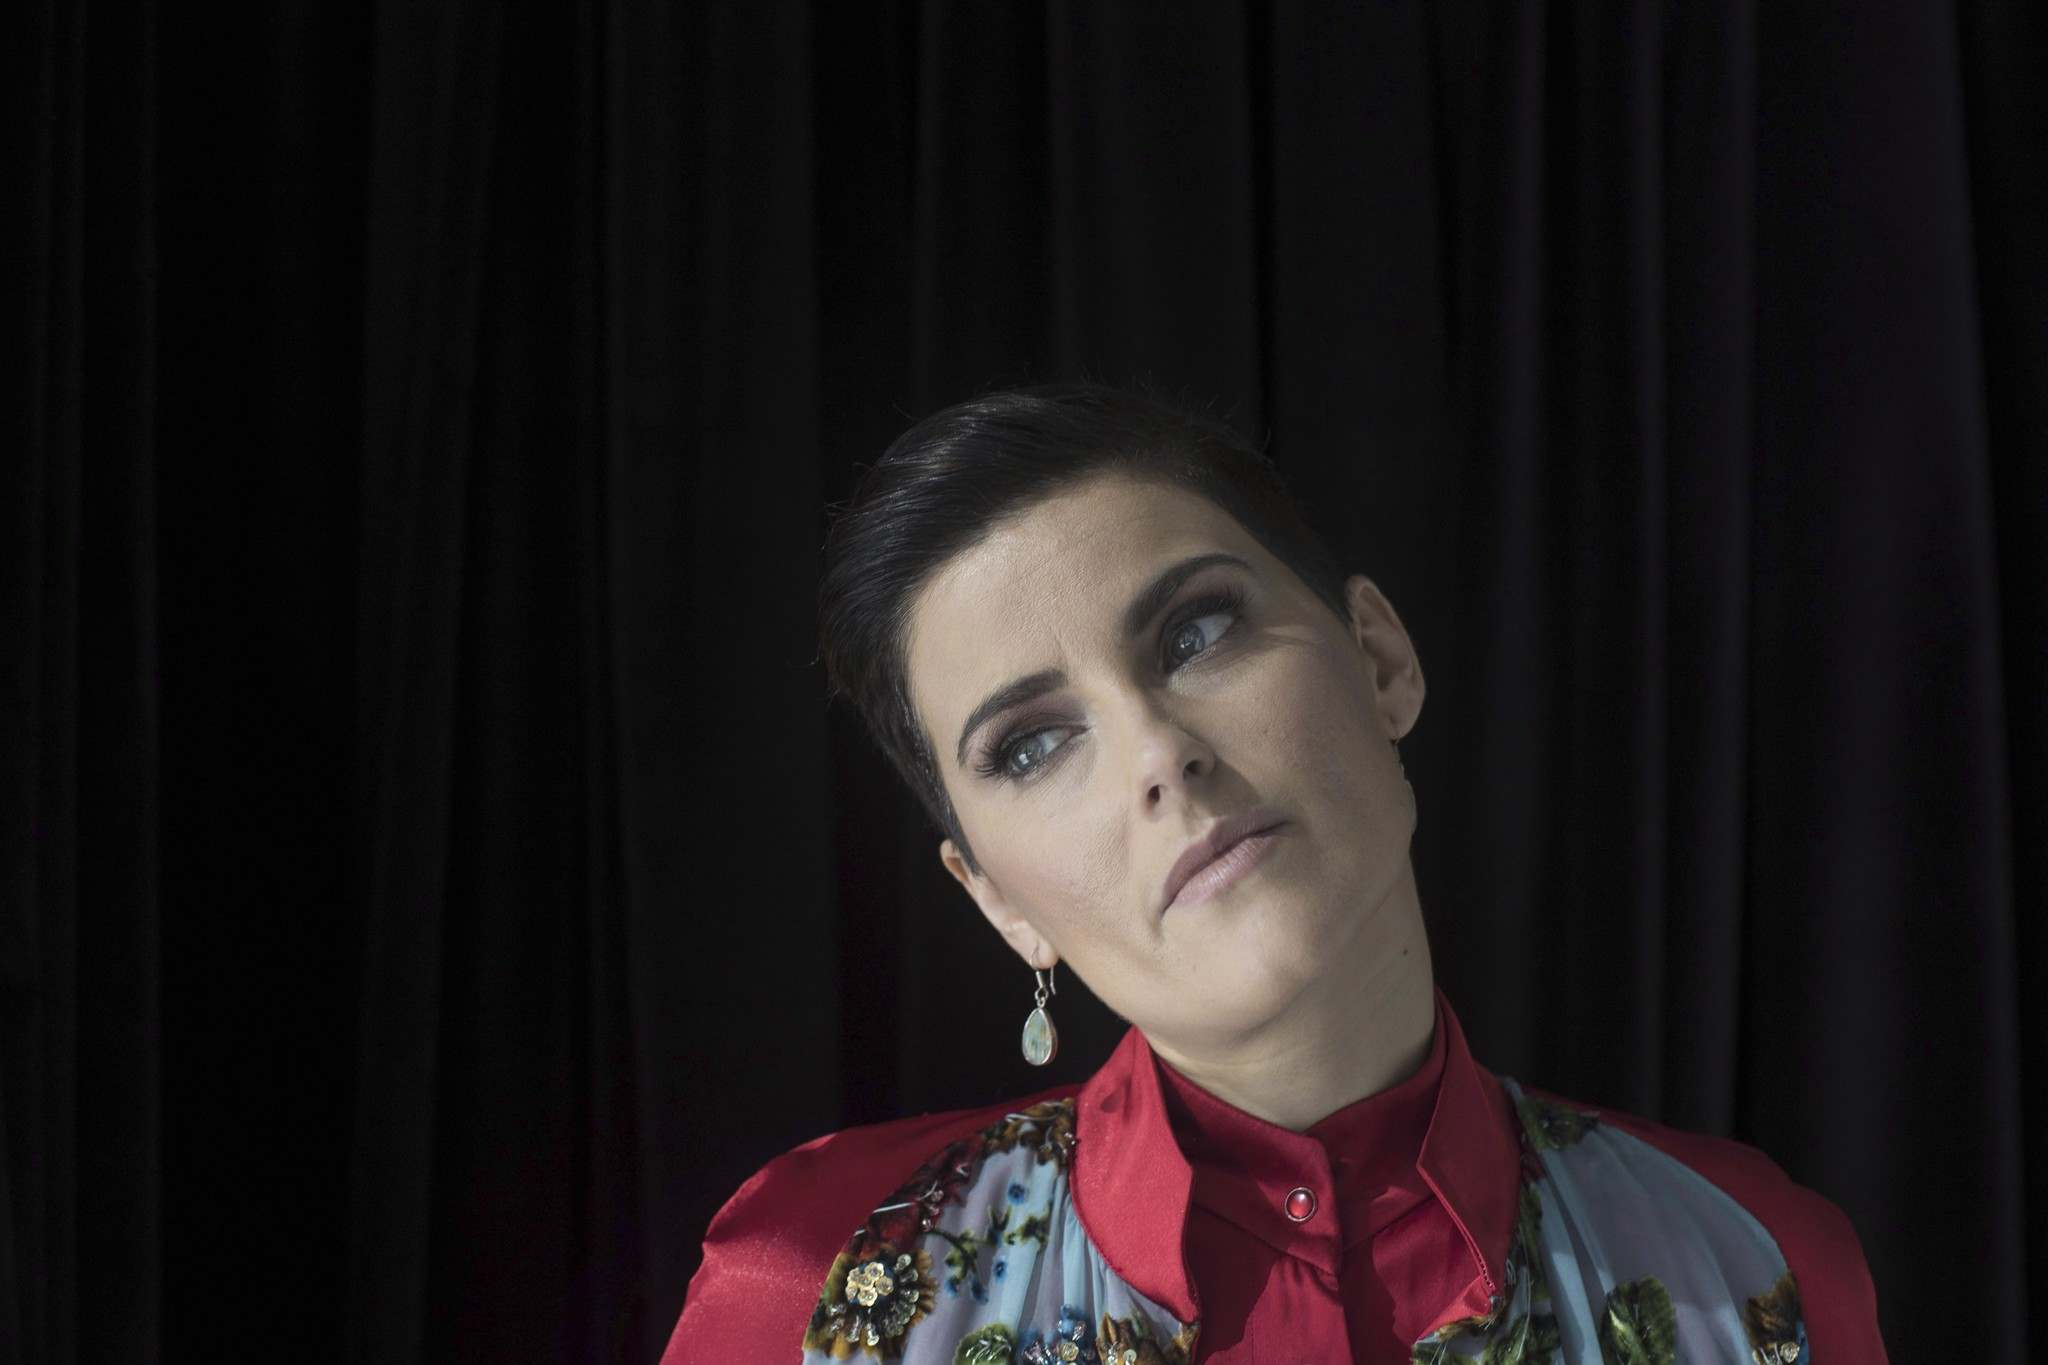 """CHRIS YOUNG / THE CANADIAN PRESS FILES</p><p>Singer/Songwriter Nelly Furtado is pictured in Toronto as she promotes her new album """"The Ride"""" on Wednesday, March 8, 2017.</p>"""